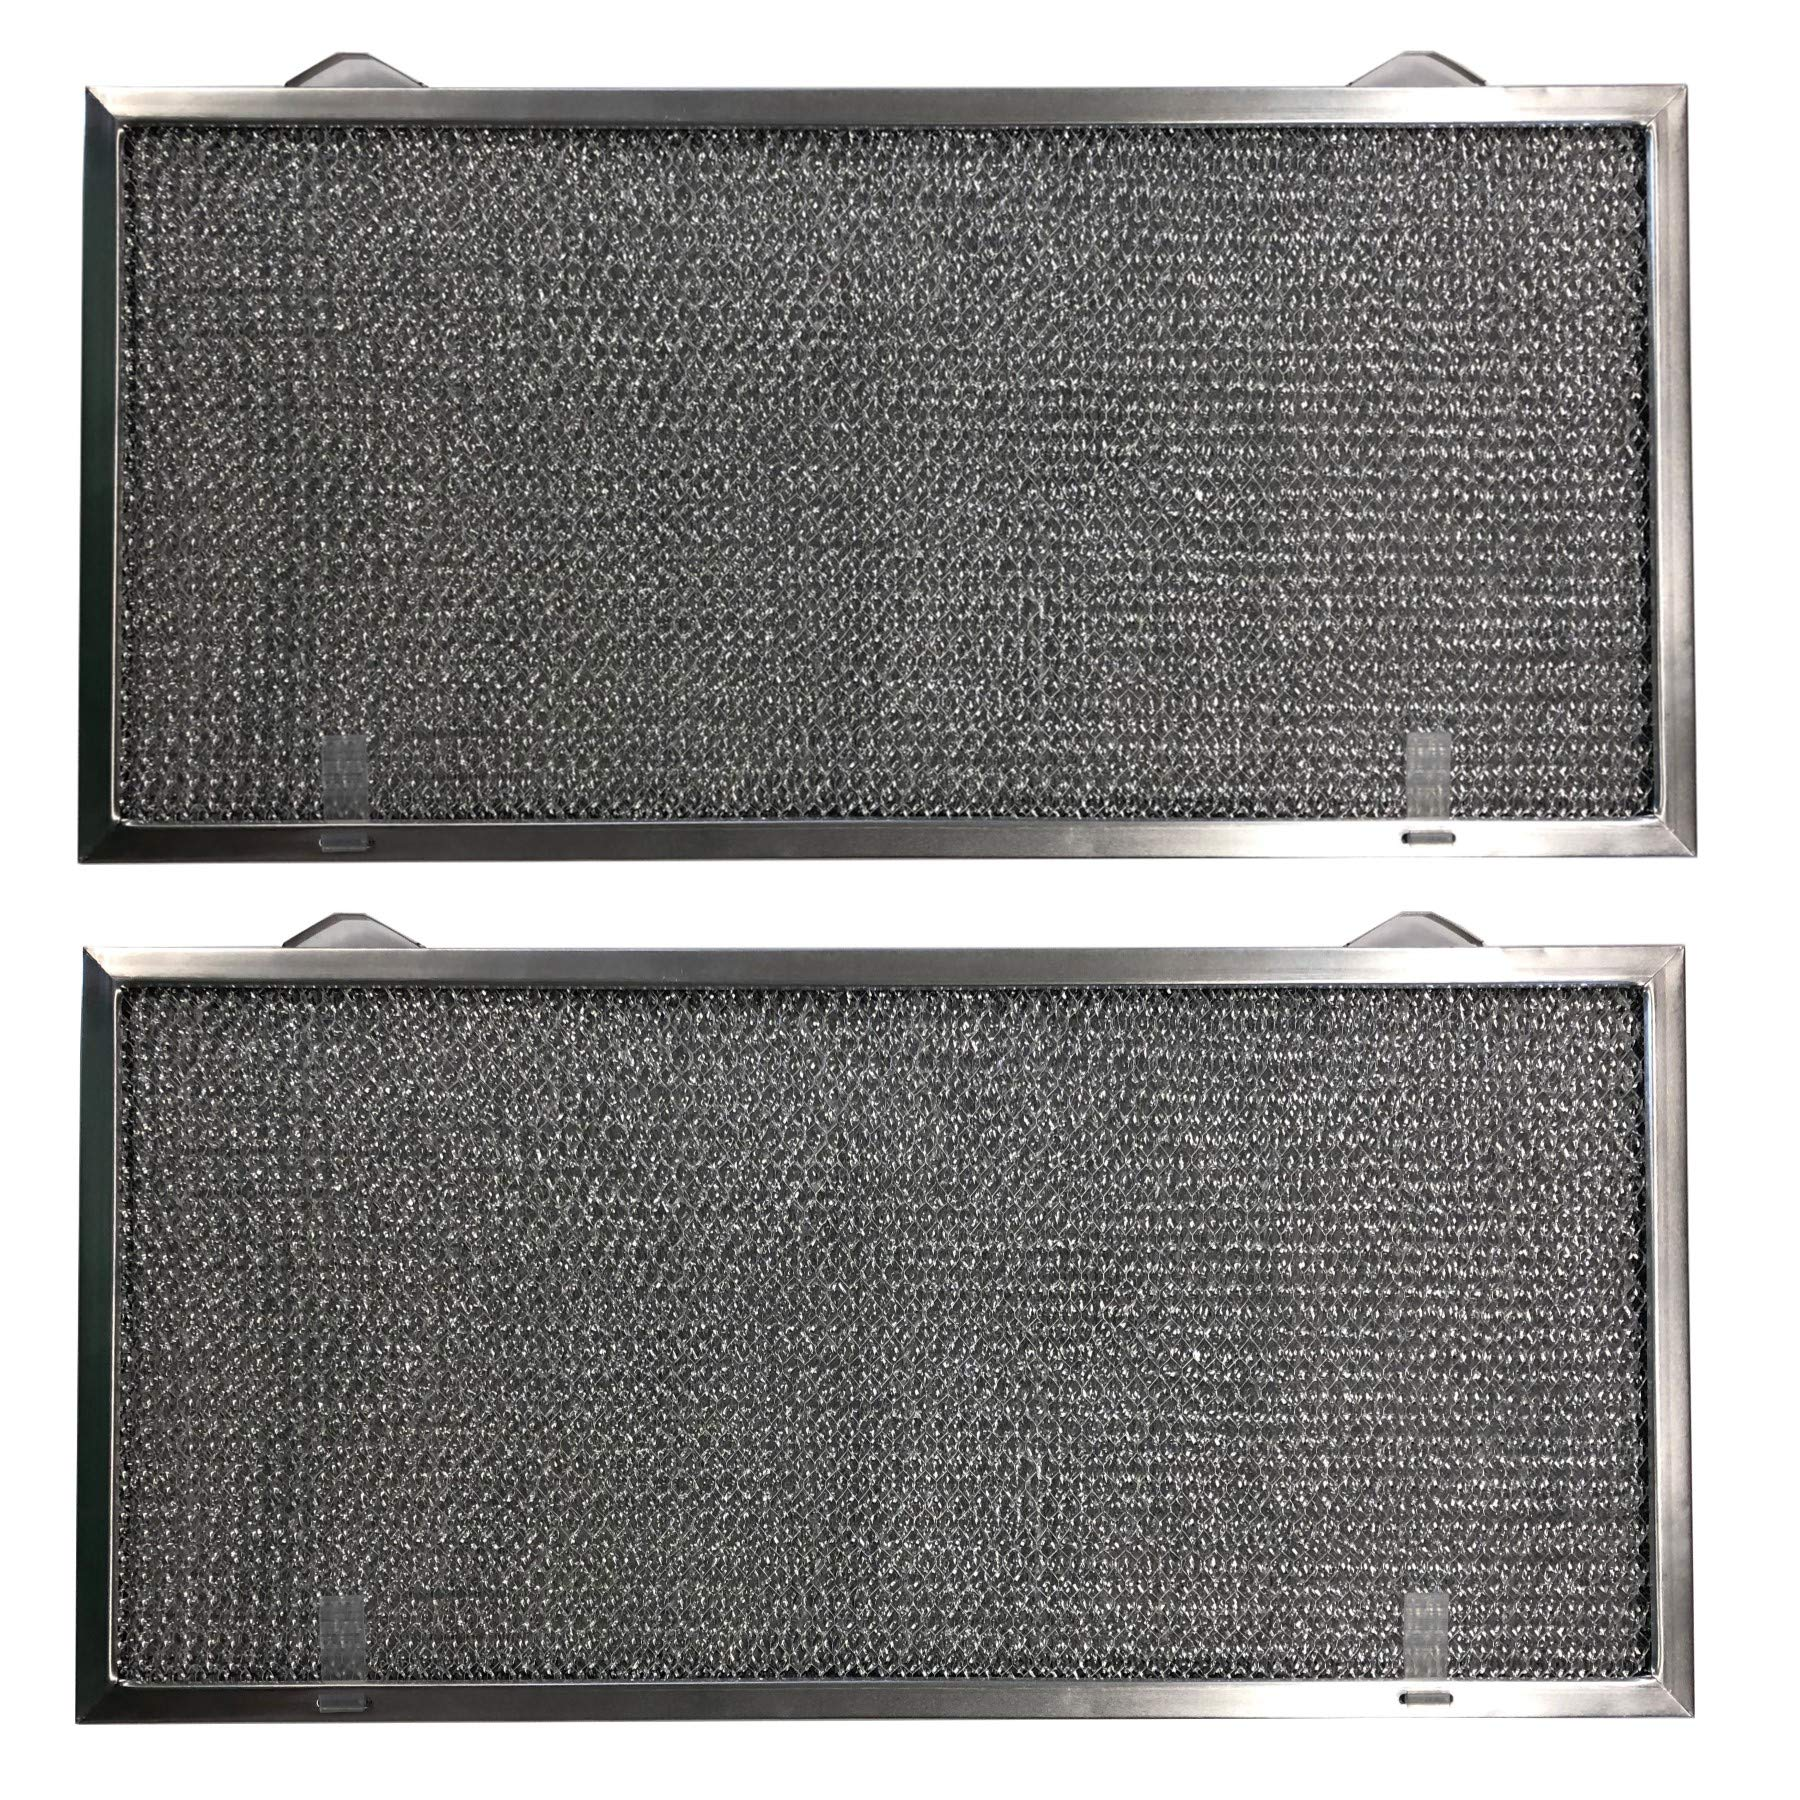 Aluminum Replacement Range Filter Compatible With GE WB13X5001  Dimensions: 8 3/4 x 18 1/8 x 3/8 2PT